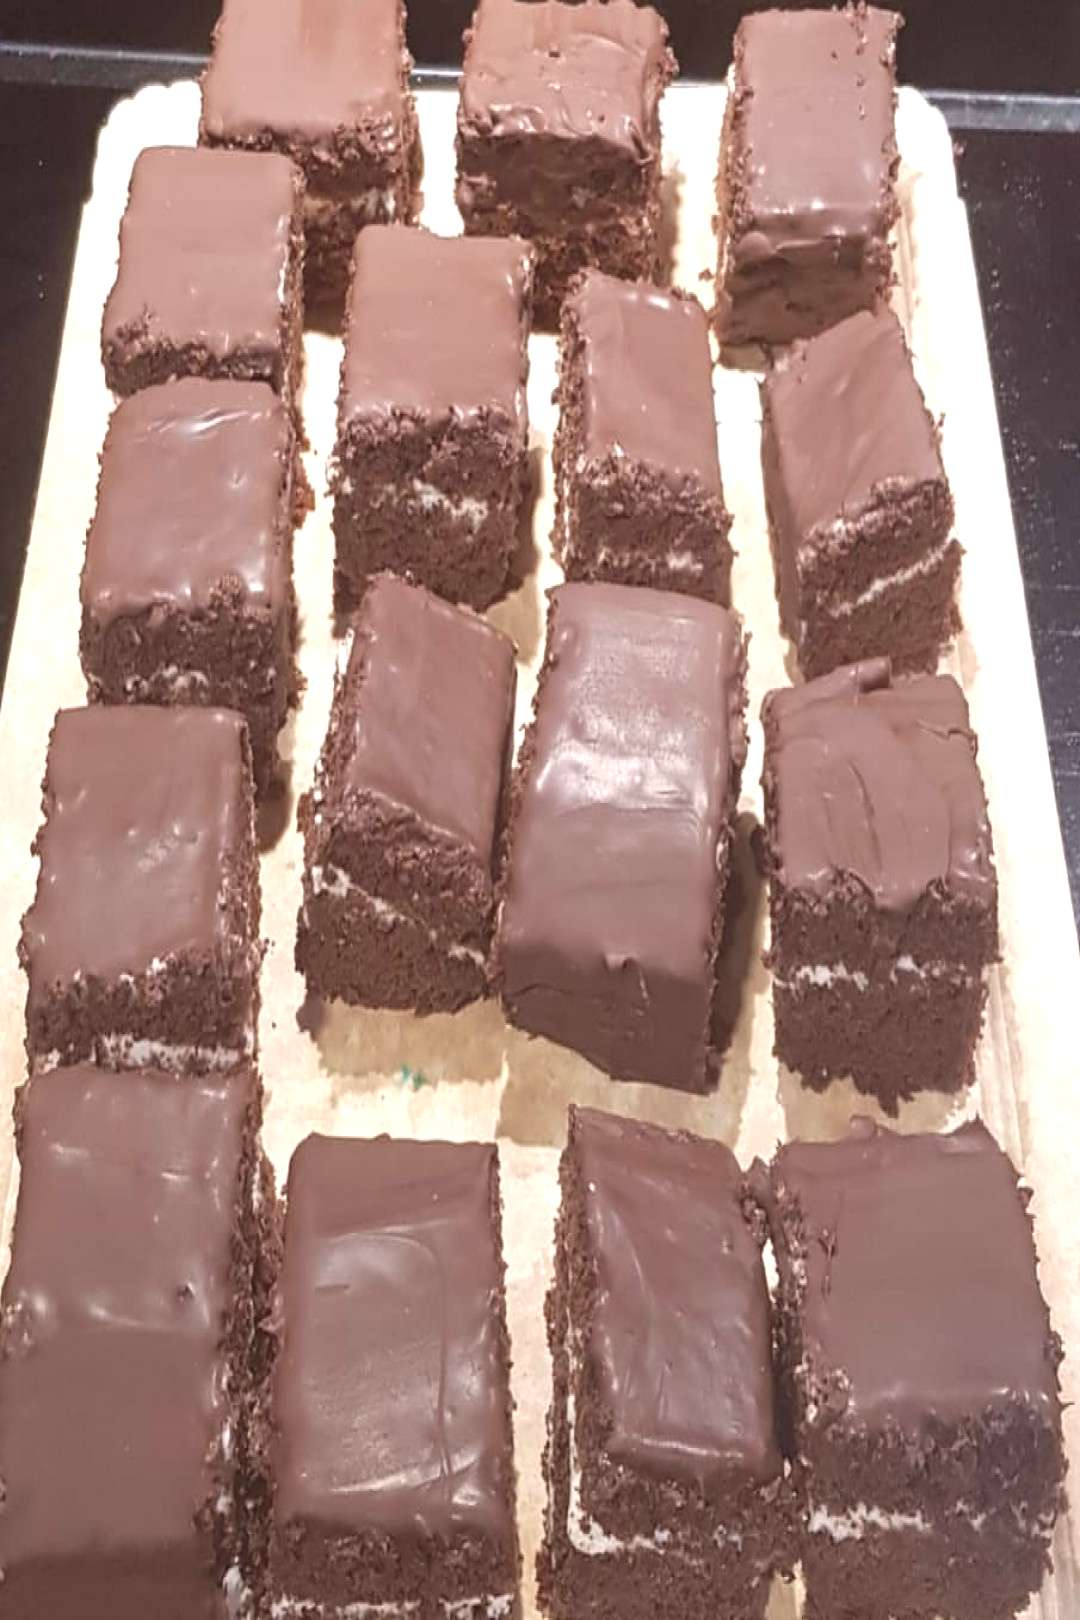 Bizcochitos de chocolate con mascarpone y cobertura de chocolate